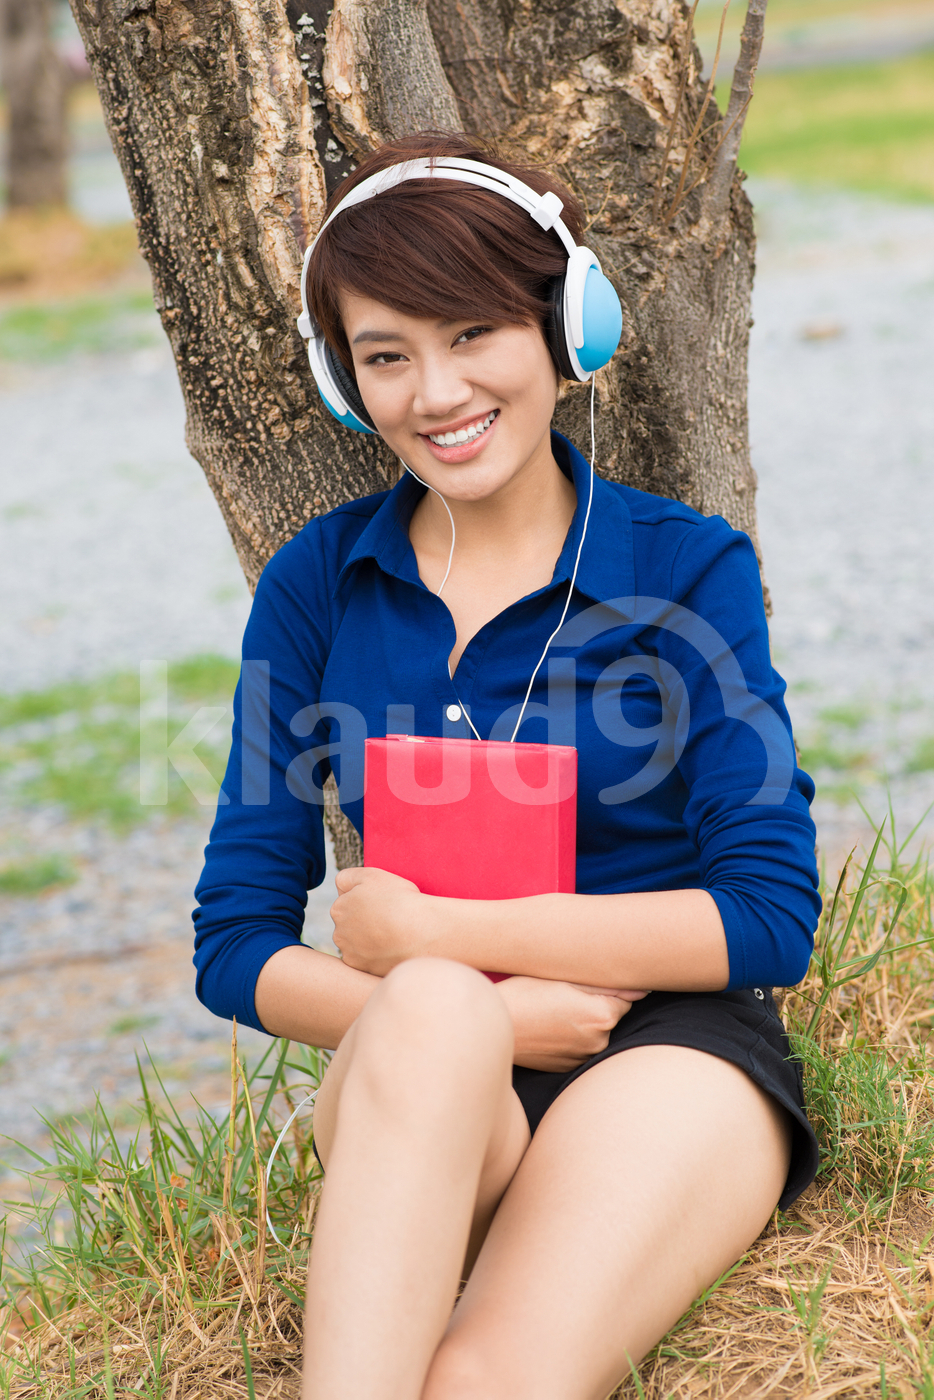 Portrait of a young girl in headphones sitting and looking at camera